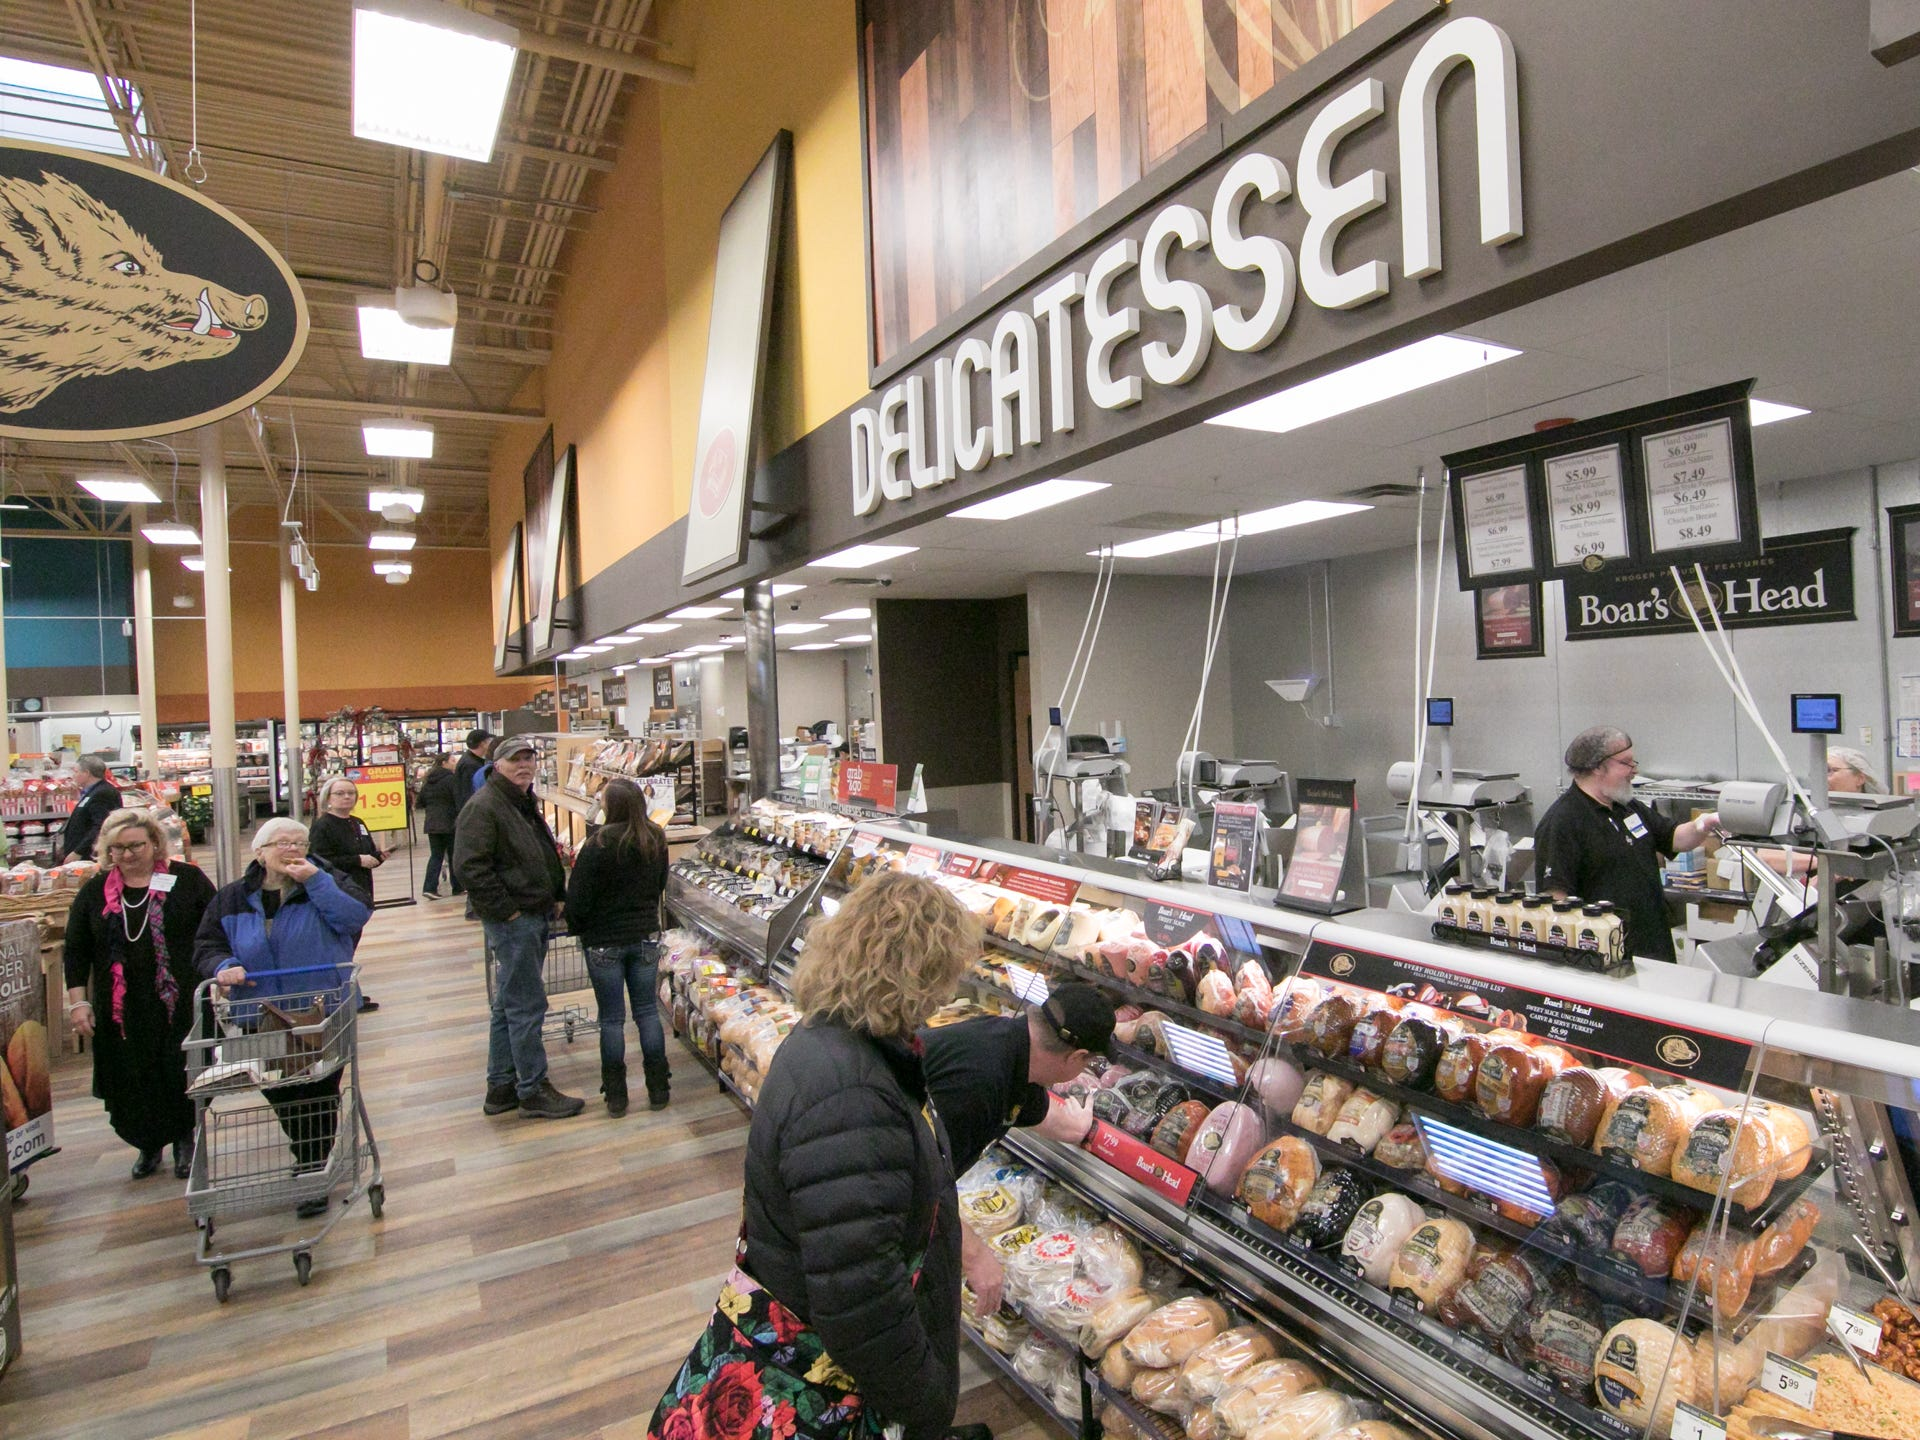 With a larger footprint in the expanded Brighton Kroger store shown Wednesday, Dec. 5, 2018, departments like the delicatessen have more room for produce.